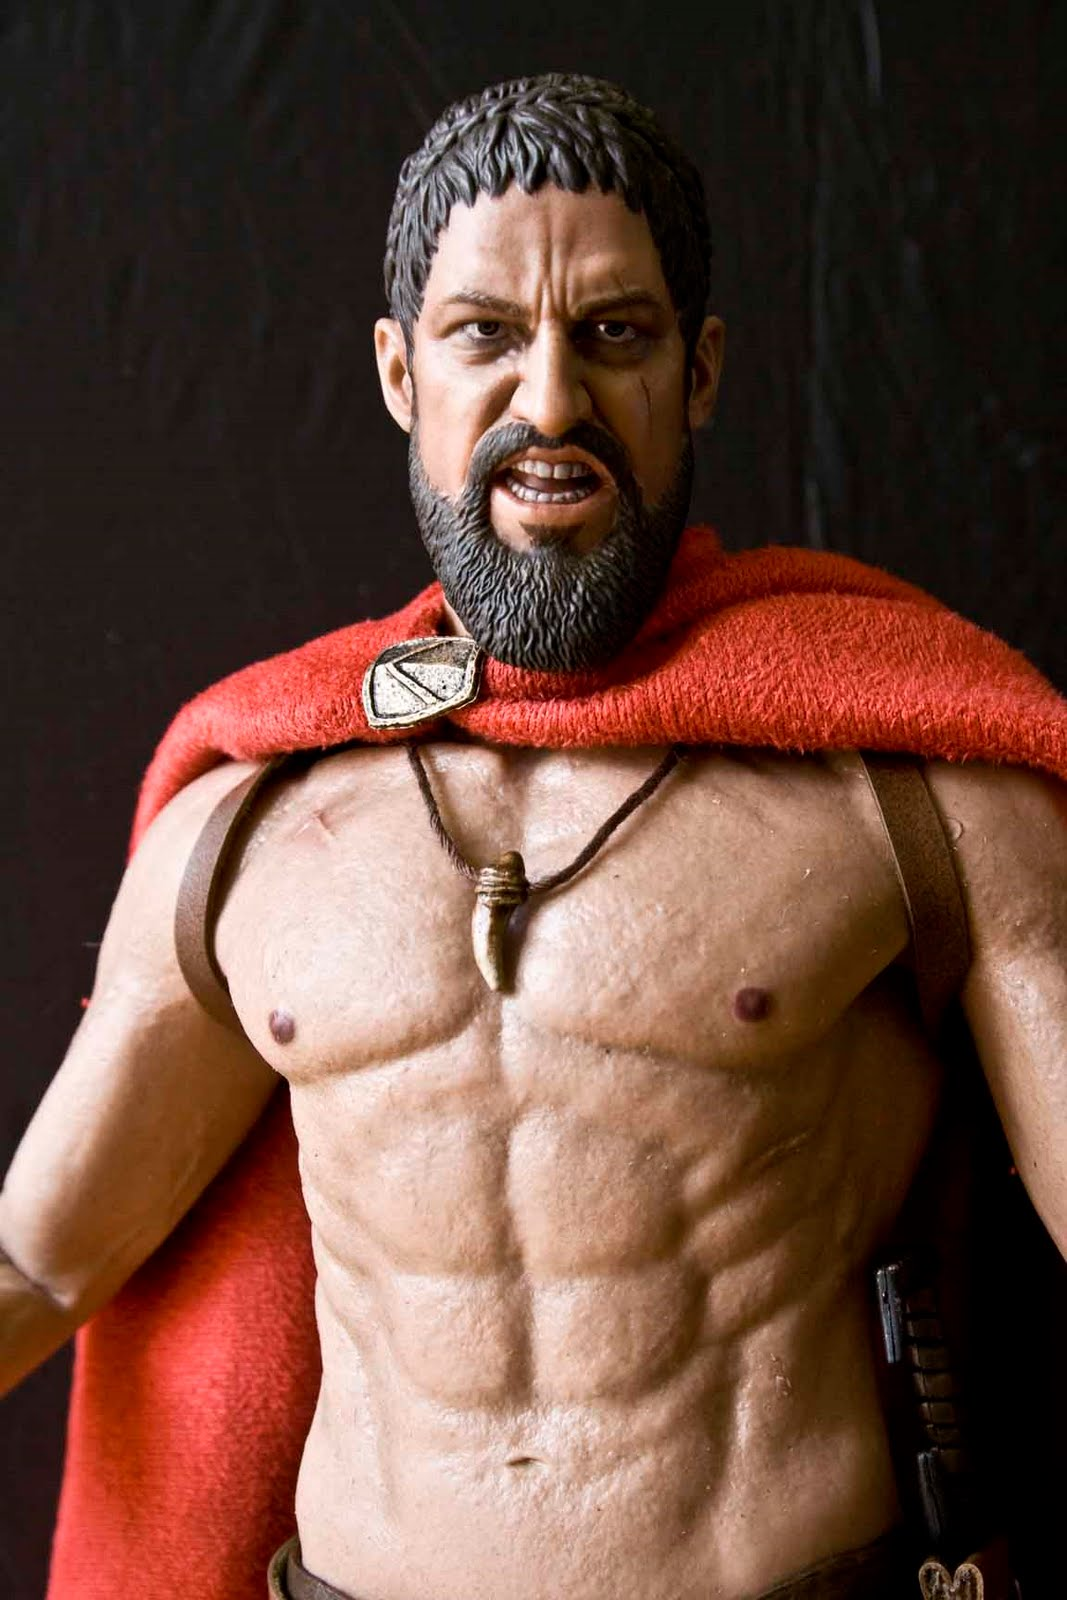 Doons Dungeon: Hot Toys Leonidas 300 Review Pt 2